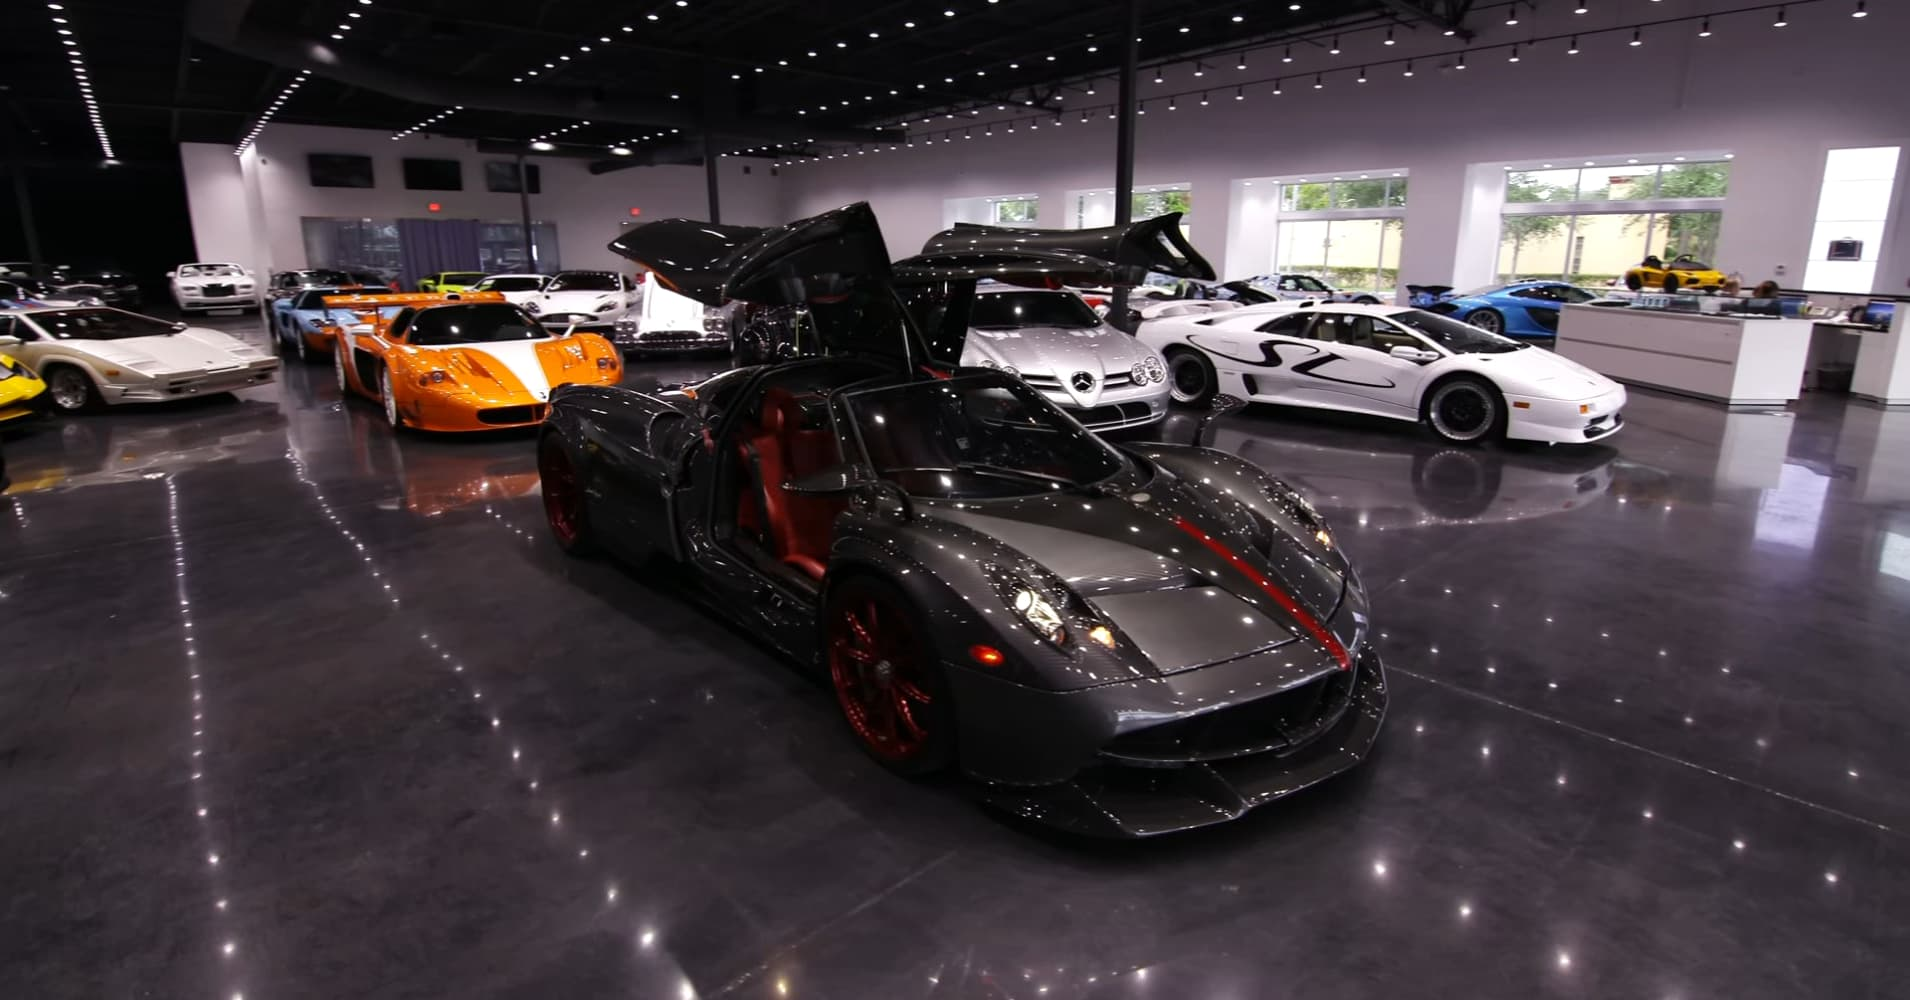 prestige imports: how much it costs to lease a pagani huayra roadster